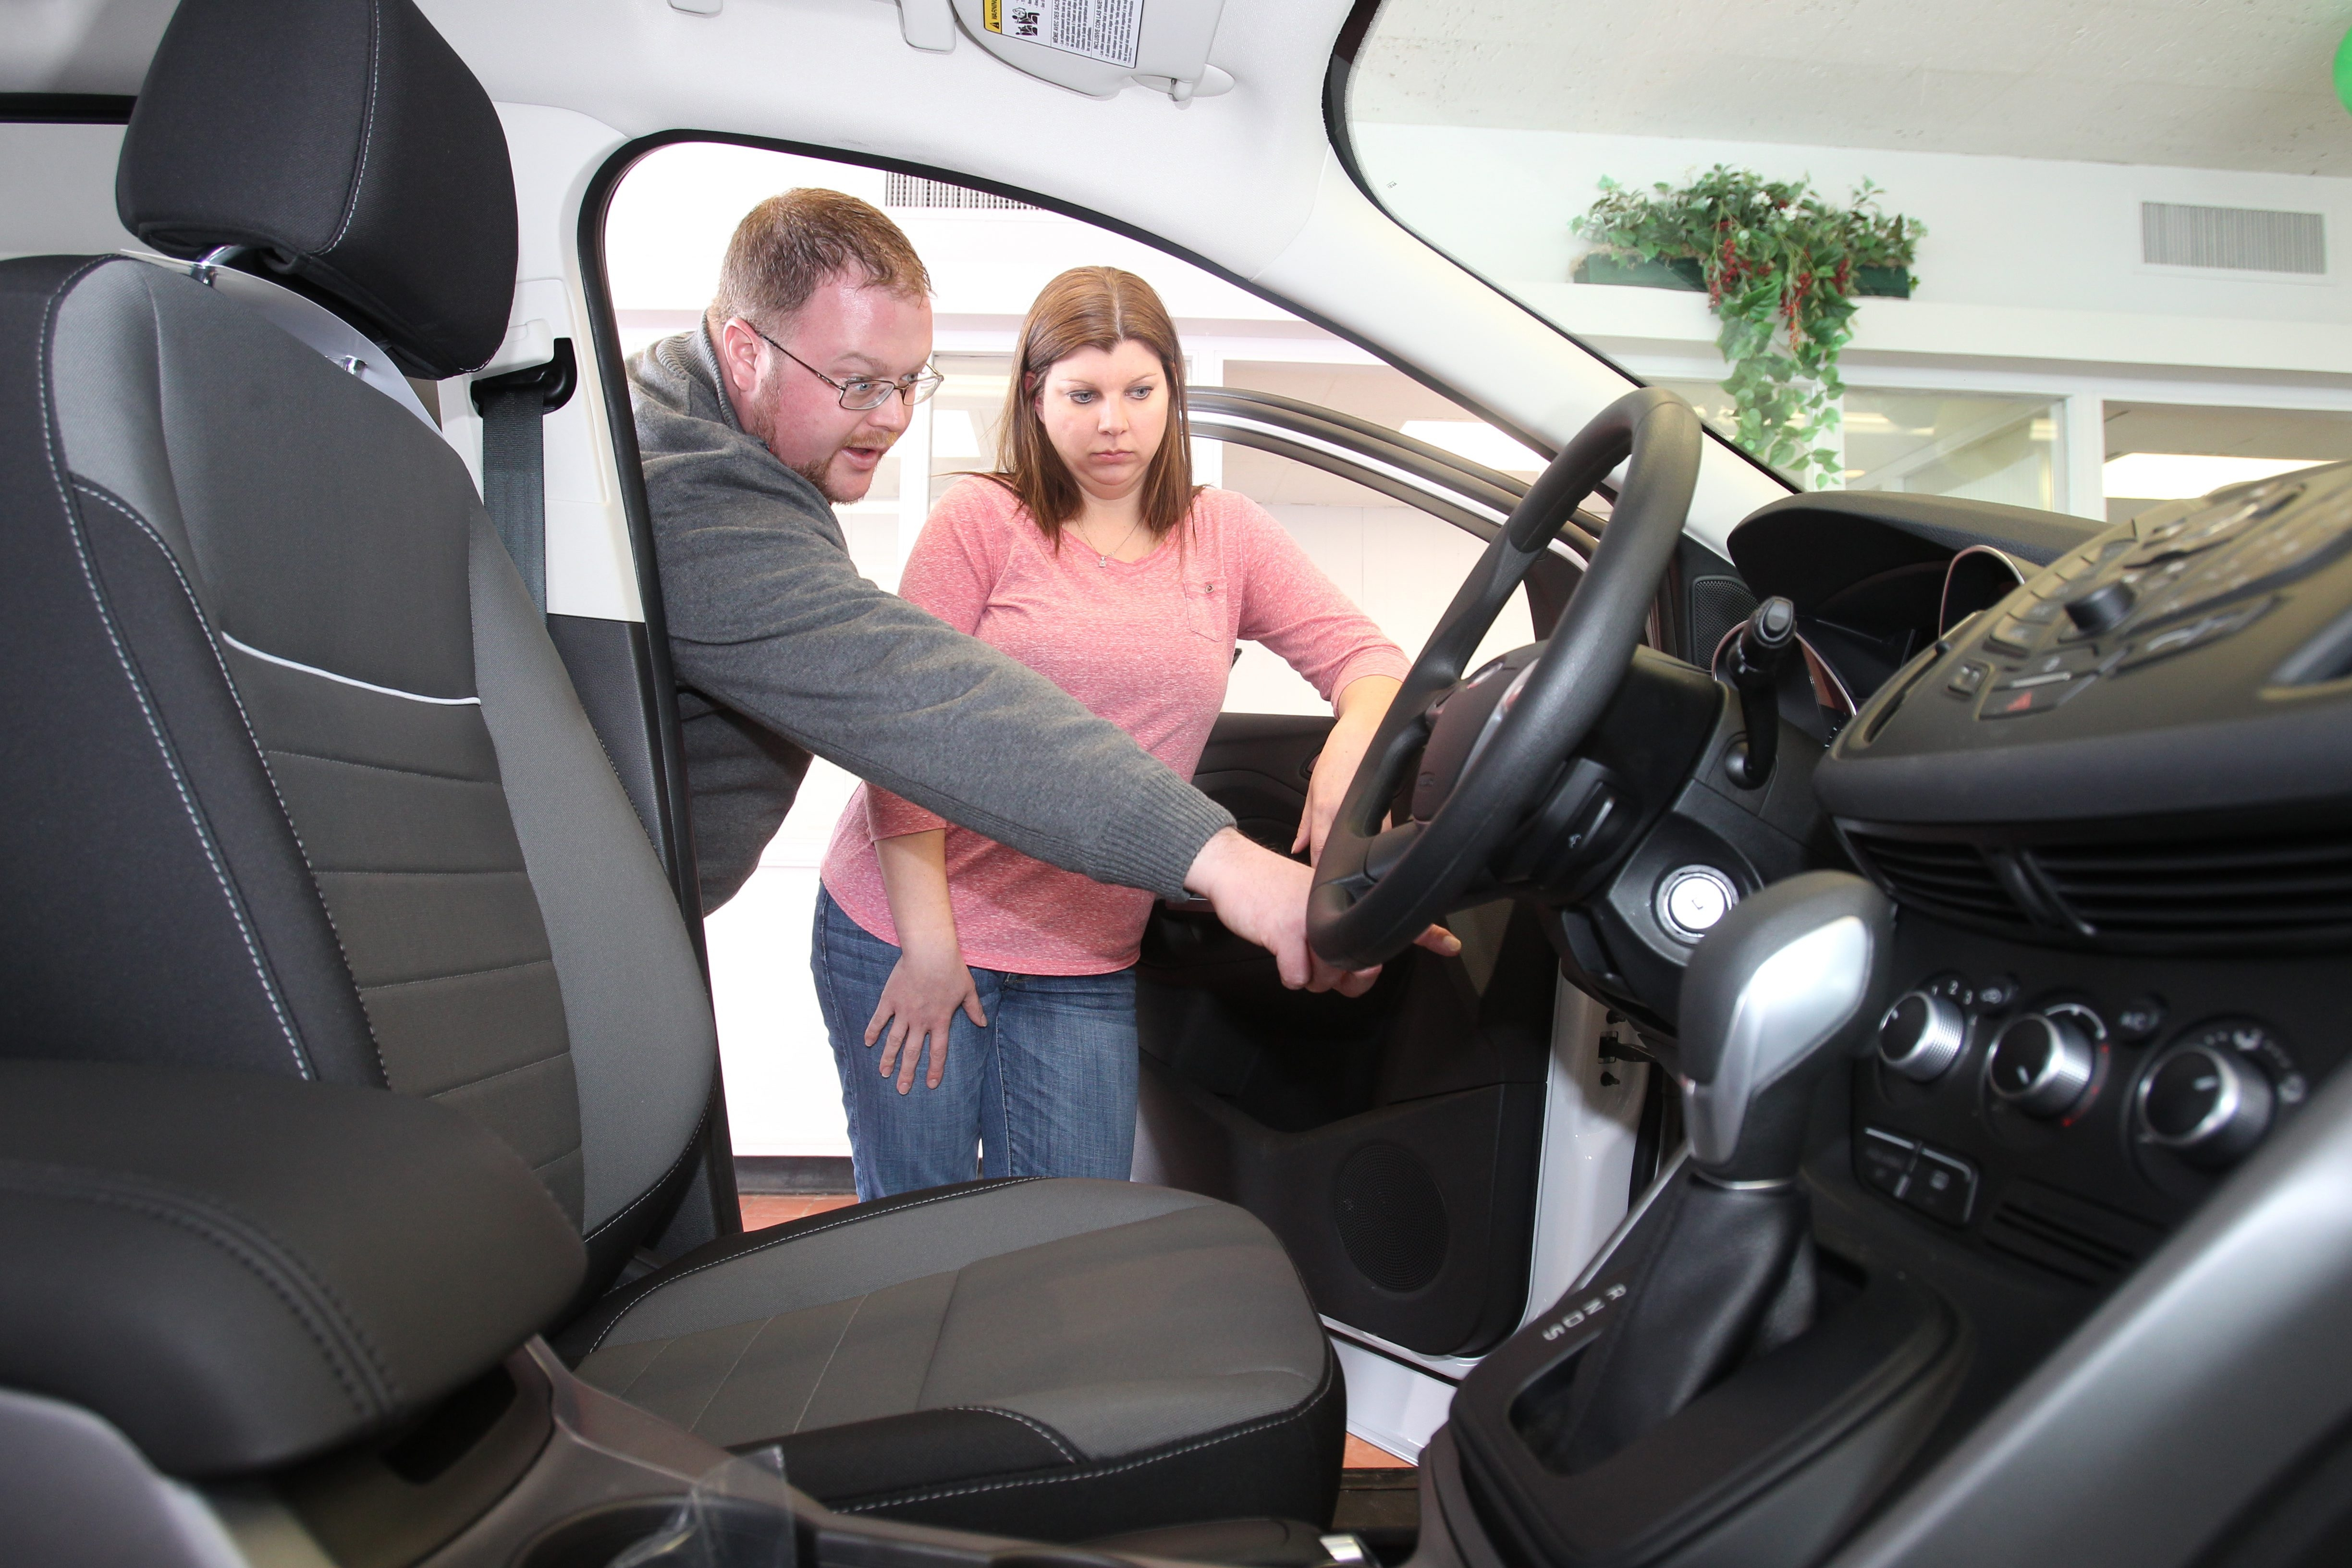 Derek Young, a Ford-certified representative, shows Meghan Sherriff of Lewiston some of the  features on a 2014 Ford Escape inside Steve Baldo Ford in Niagara Falls on March 3.